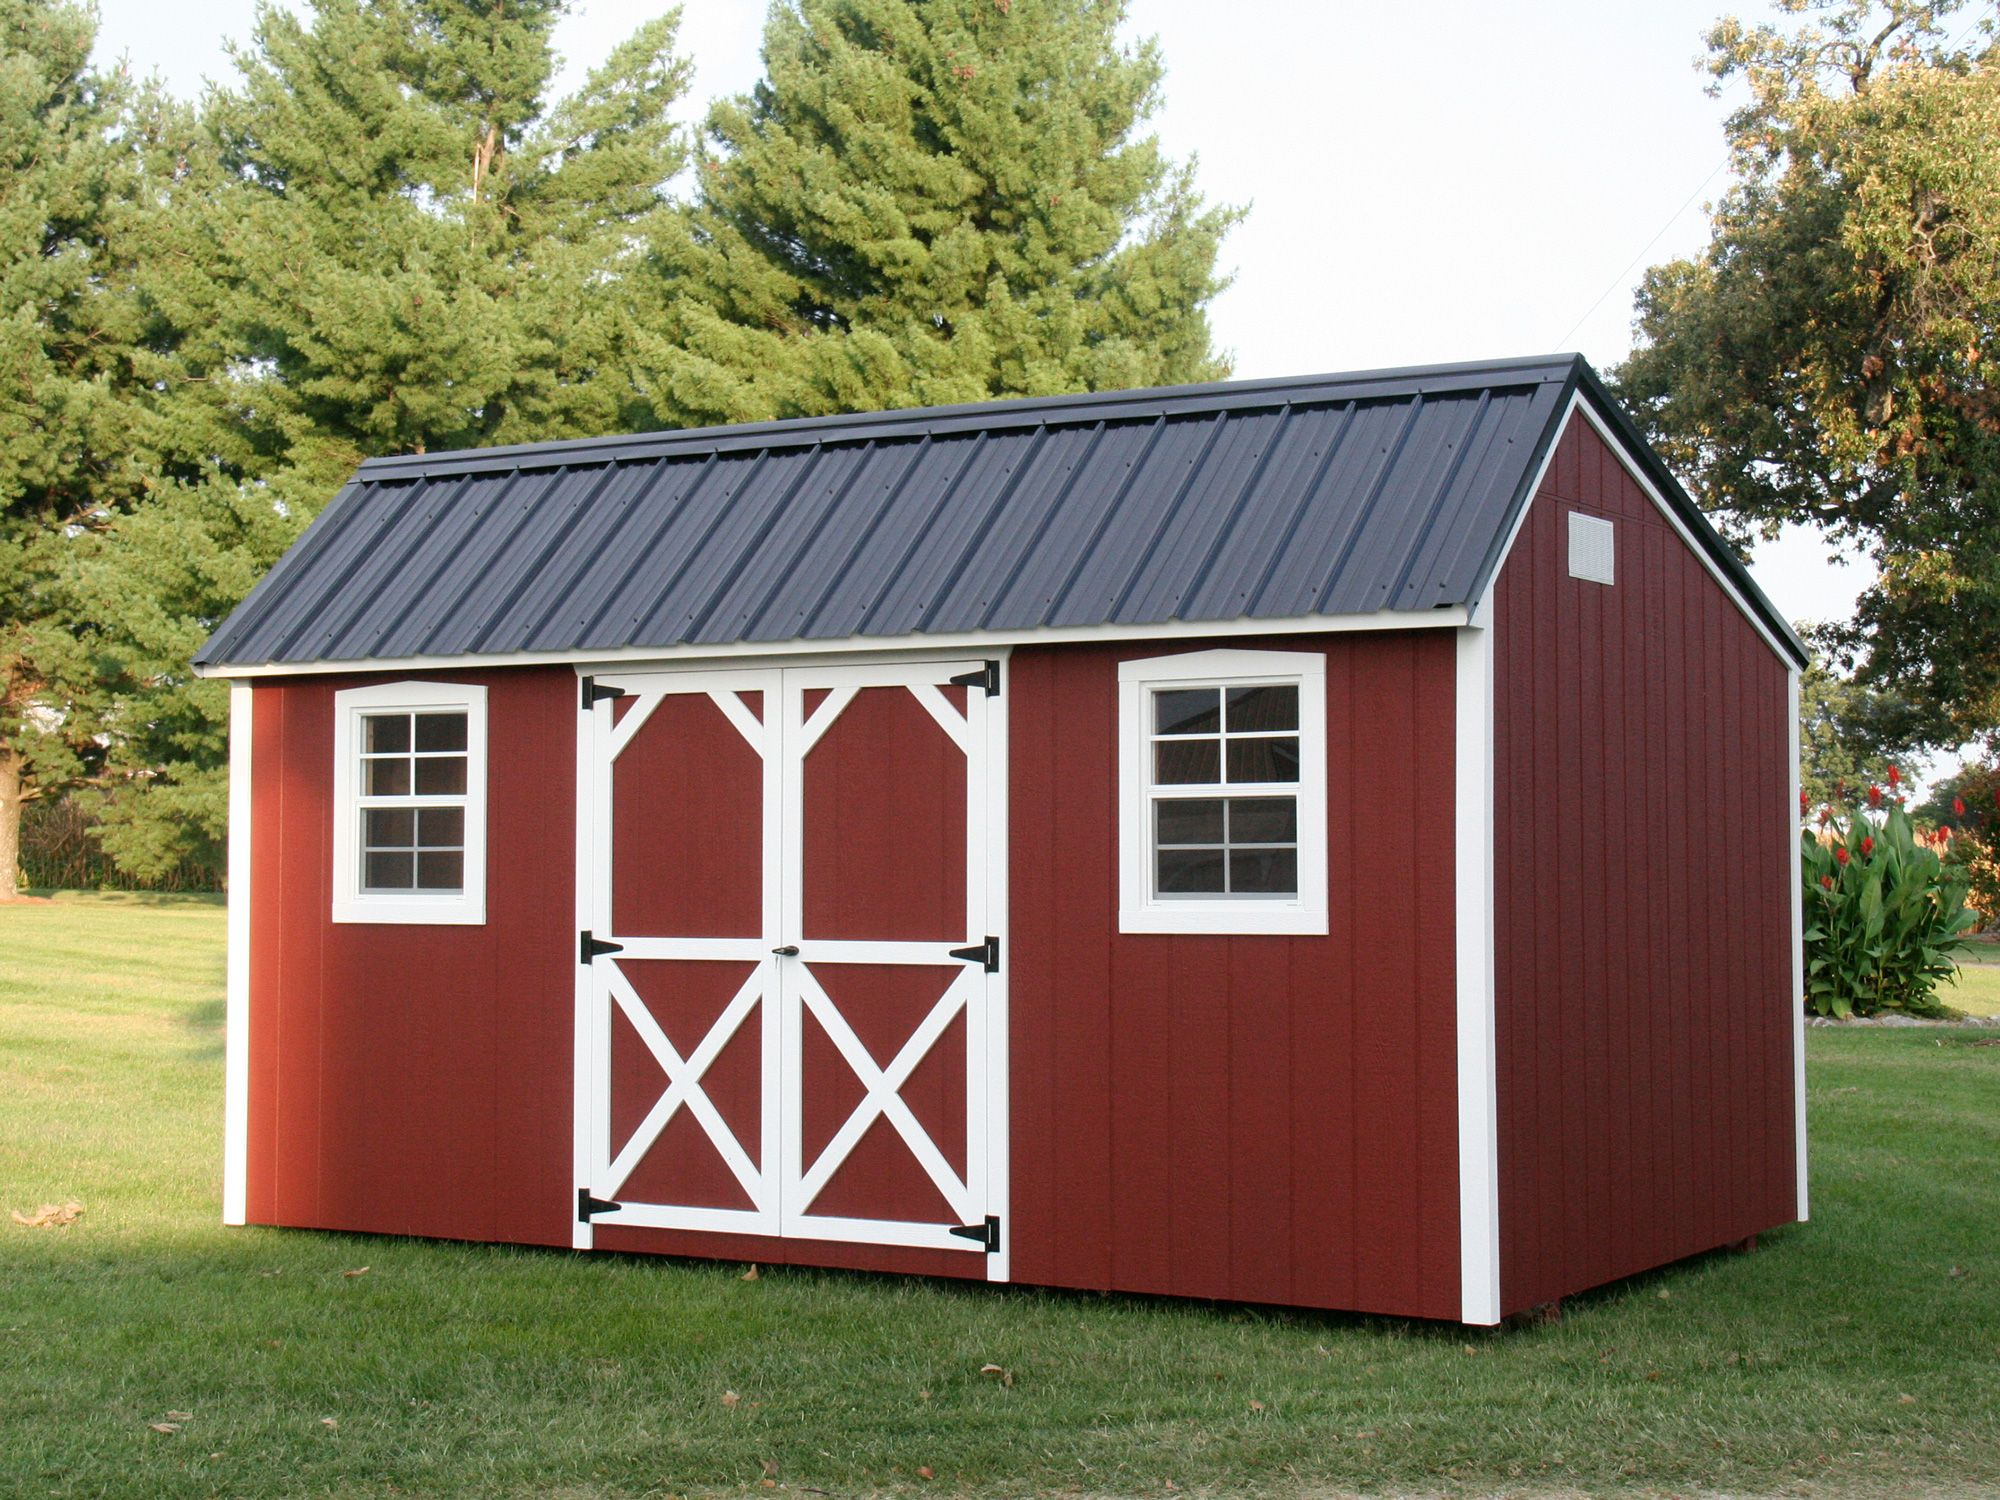 Best Red Painted Wooden Storage Building With A Black Metal Roof Quaker Style Sheds Pinterest 640 x 480